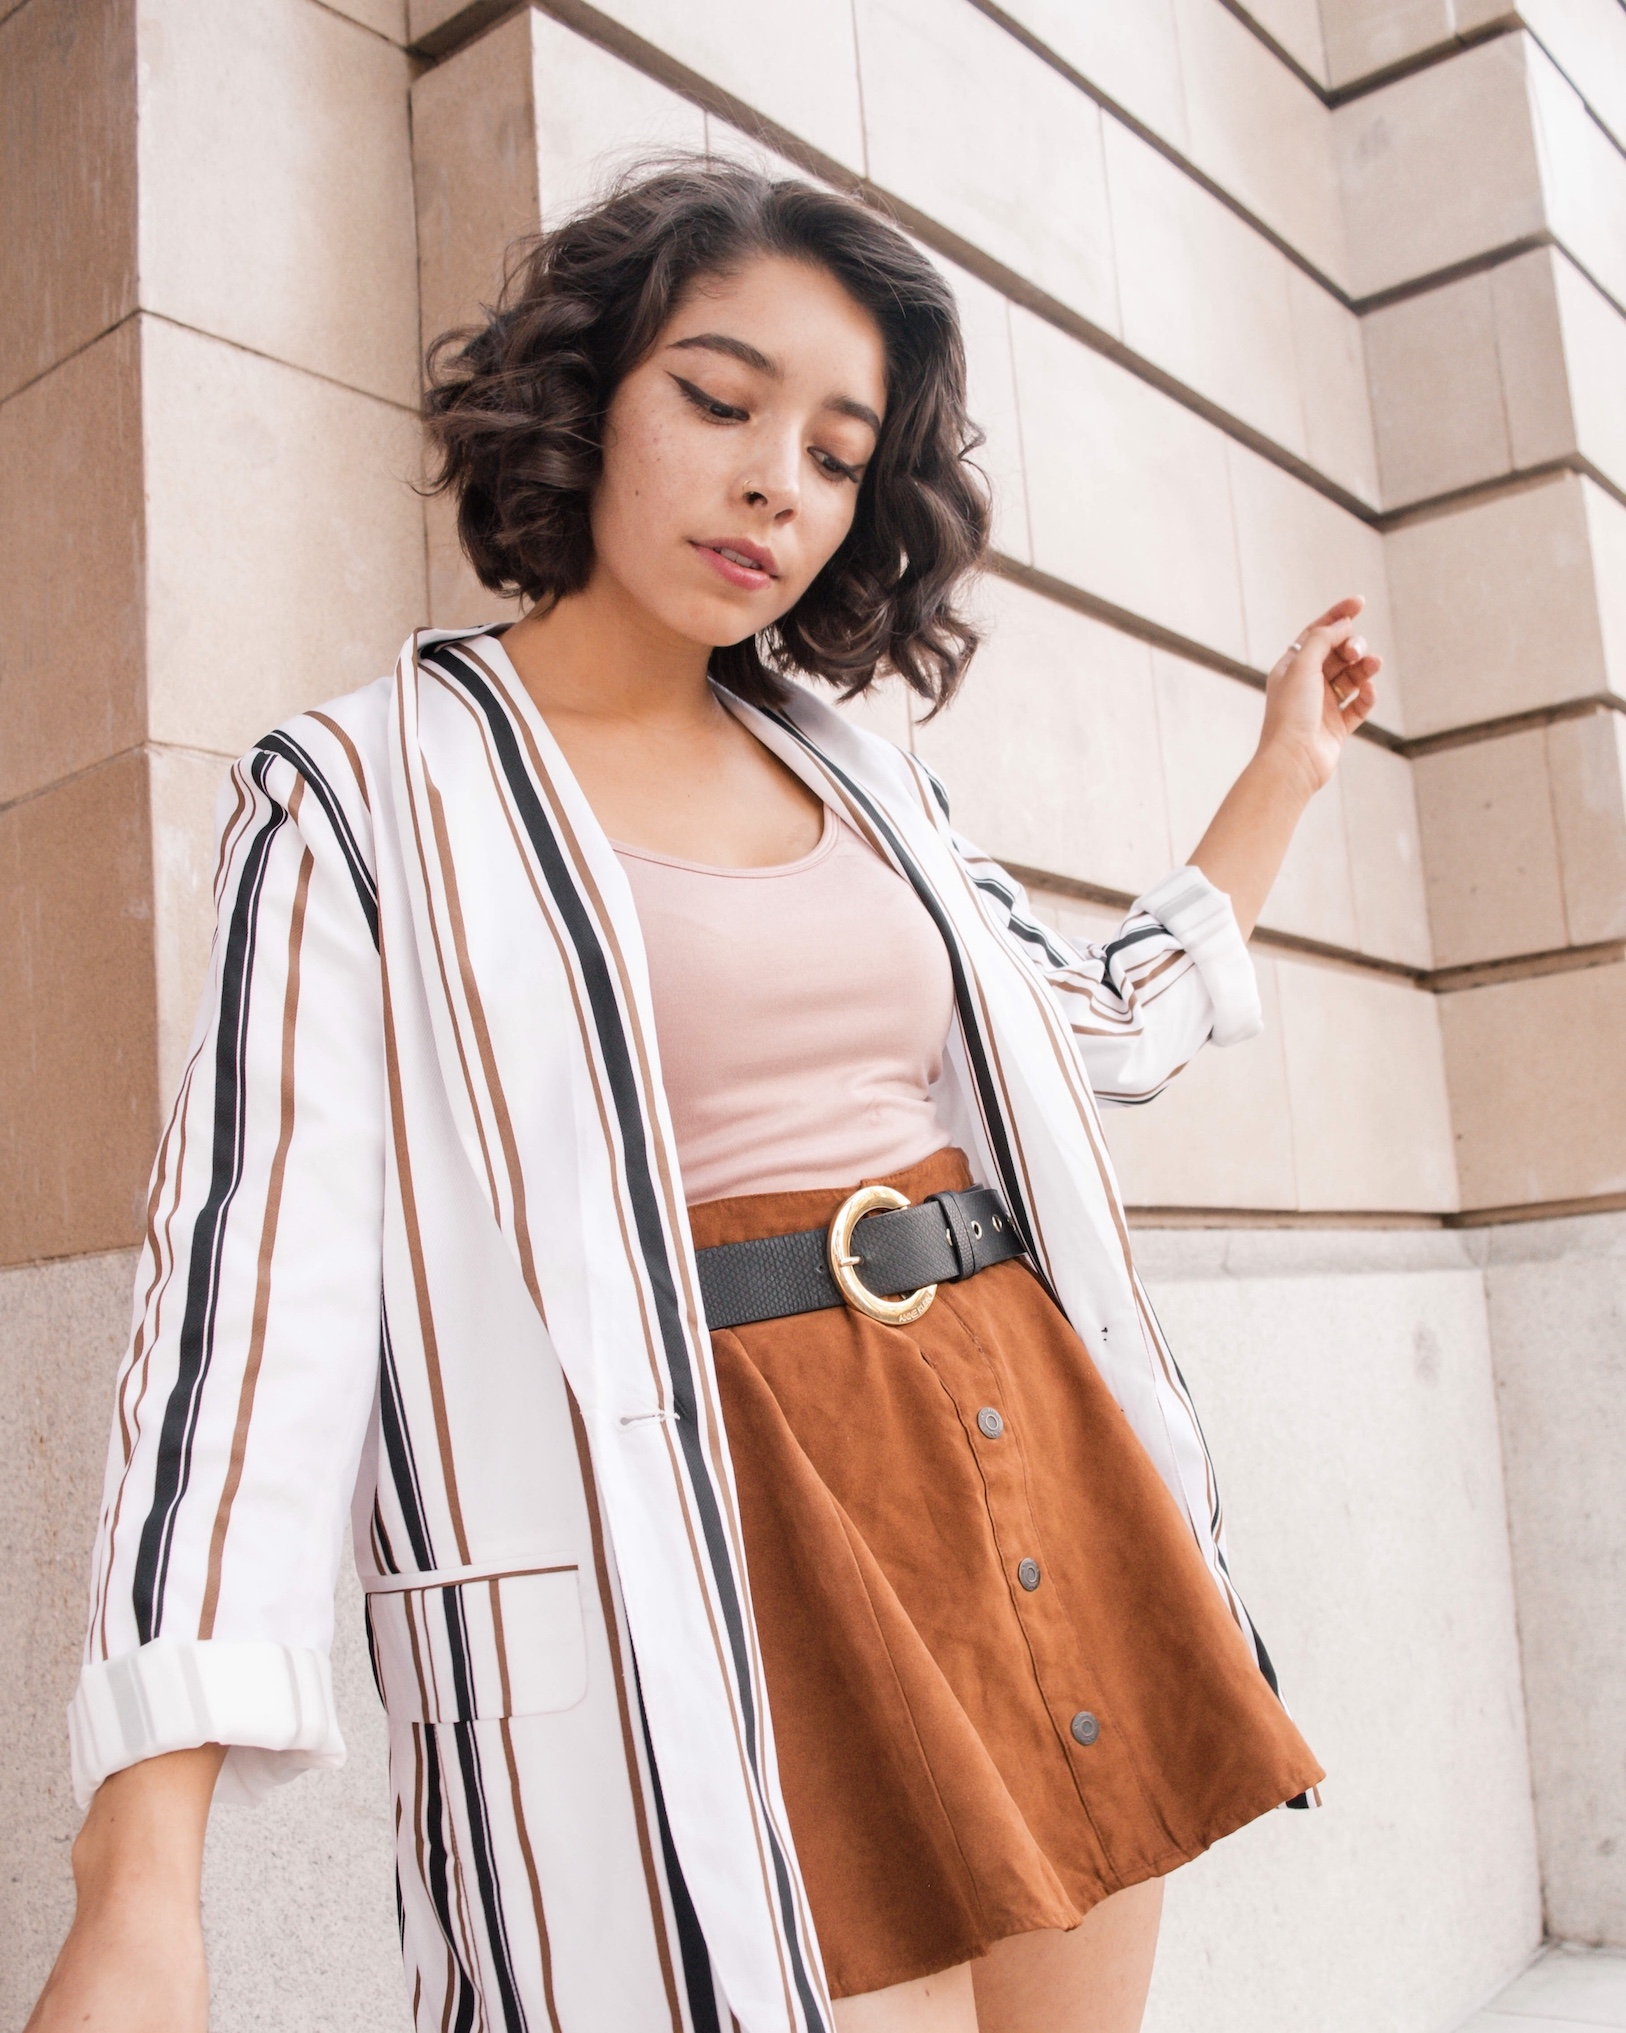 Simple fall outfit idea // A Week Of Self-Expressive Outfits With Aja Duran From Aja With Love on The Good Trade